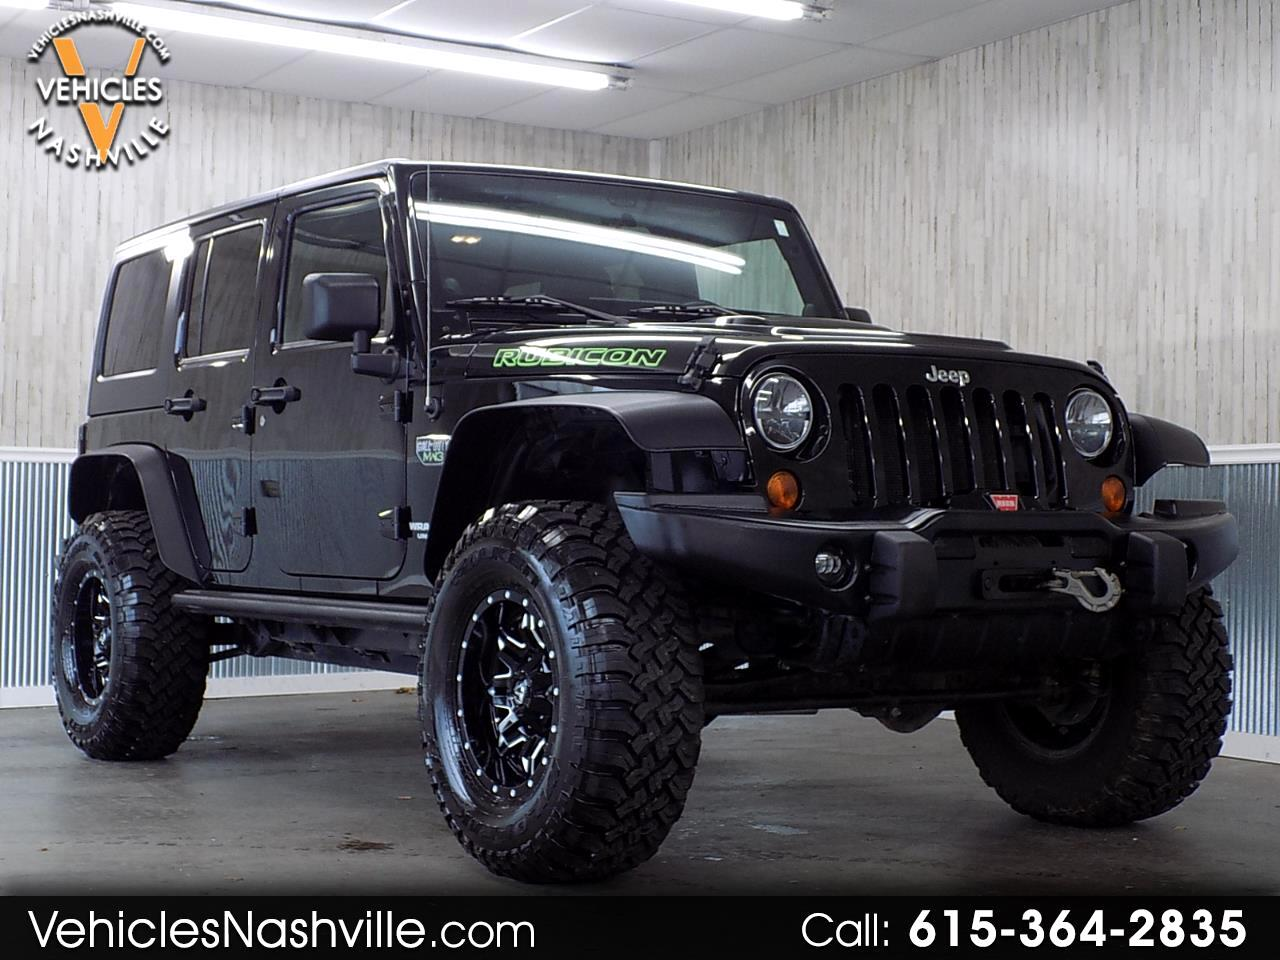 2012 Jeep Wrangler 4WD 4dr Unlimited Rubicon